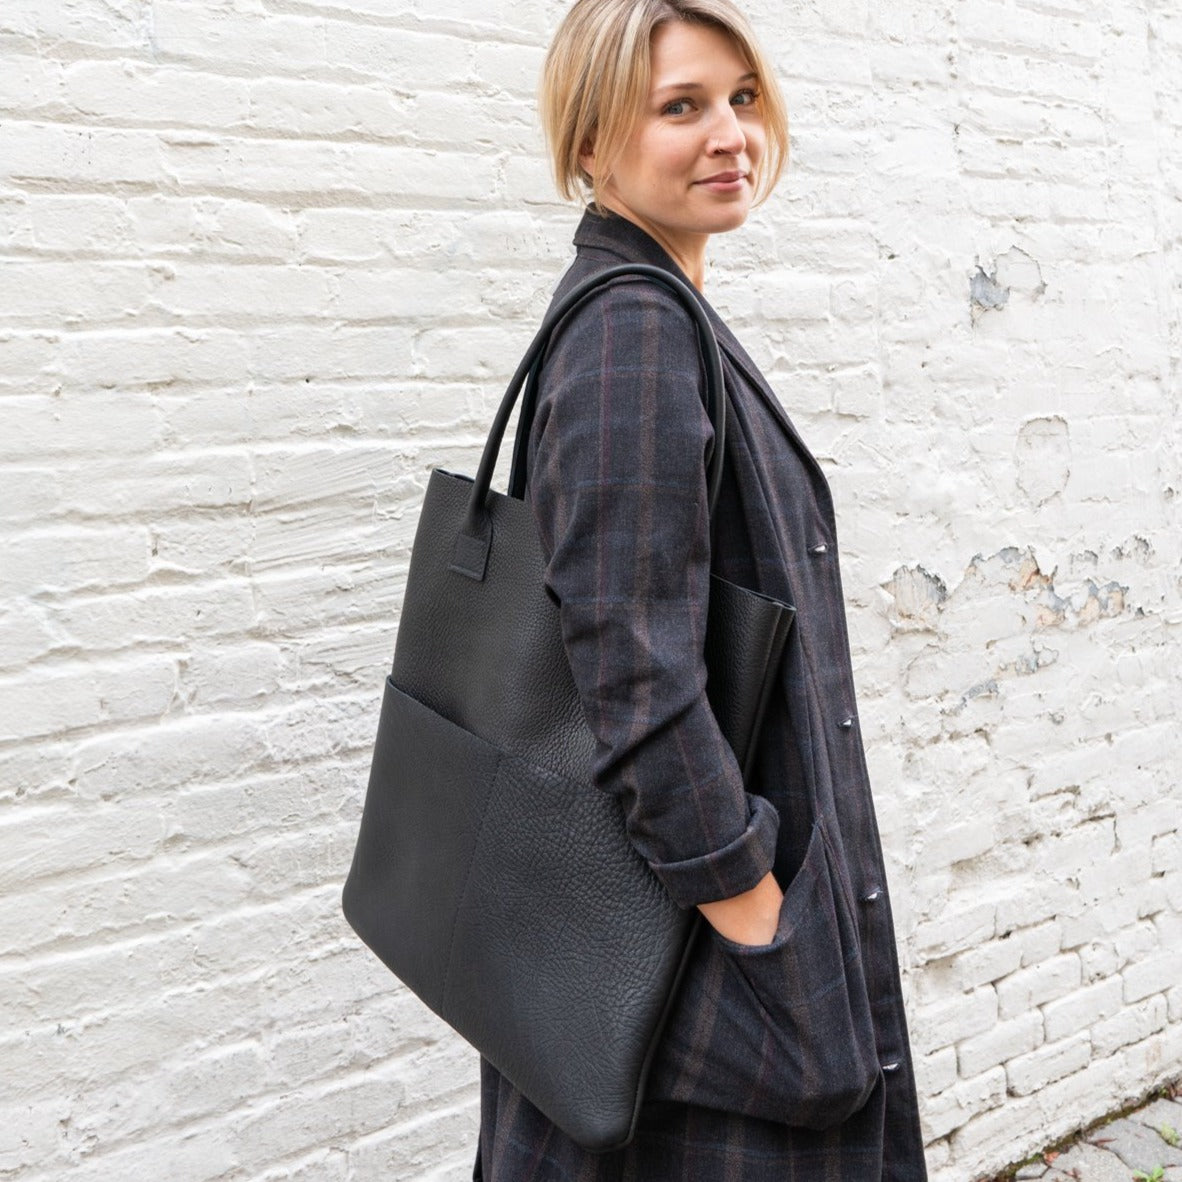 Leather Tote in Black Pebbled Leather